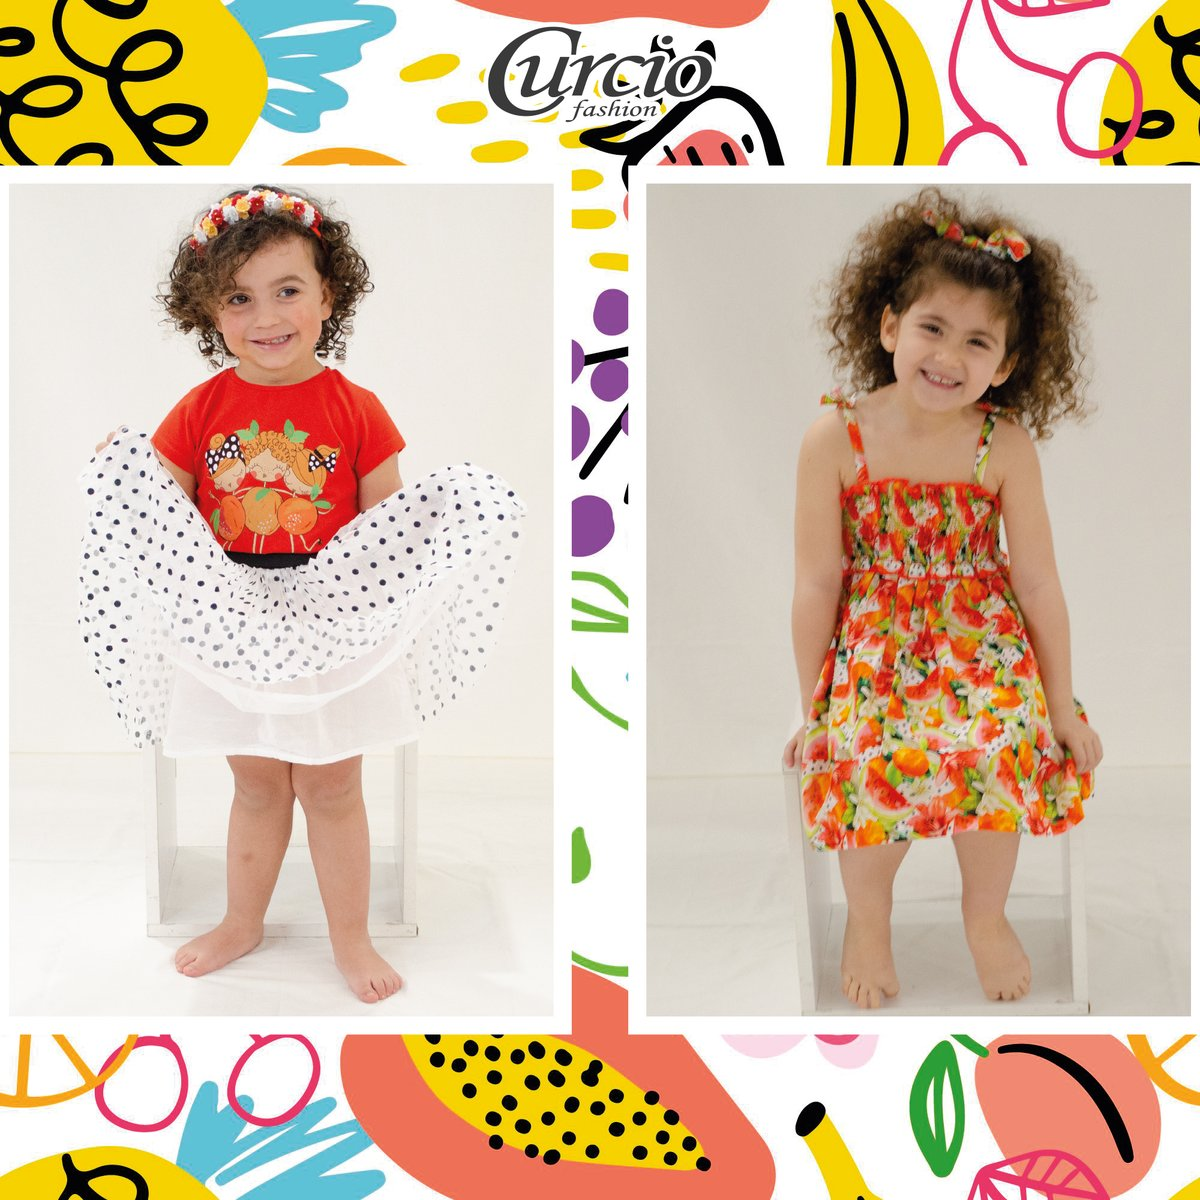 💃❤️Future #CurcioFashion Icons are growing up❗ 📸 #photoshoots1  👗#Mayoral   📍Curcio Fashion #ViboValentia . 📸 #shooting #photography #shoot #like #beauty #style #kidsmodel #kidsfashion #kids #fashionkids #kidsstyle #childmodel #modelkids #baby #kidstyle #photooftheday 📸 https://t.co/2xI4Micfky